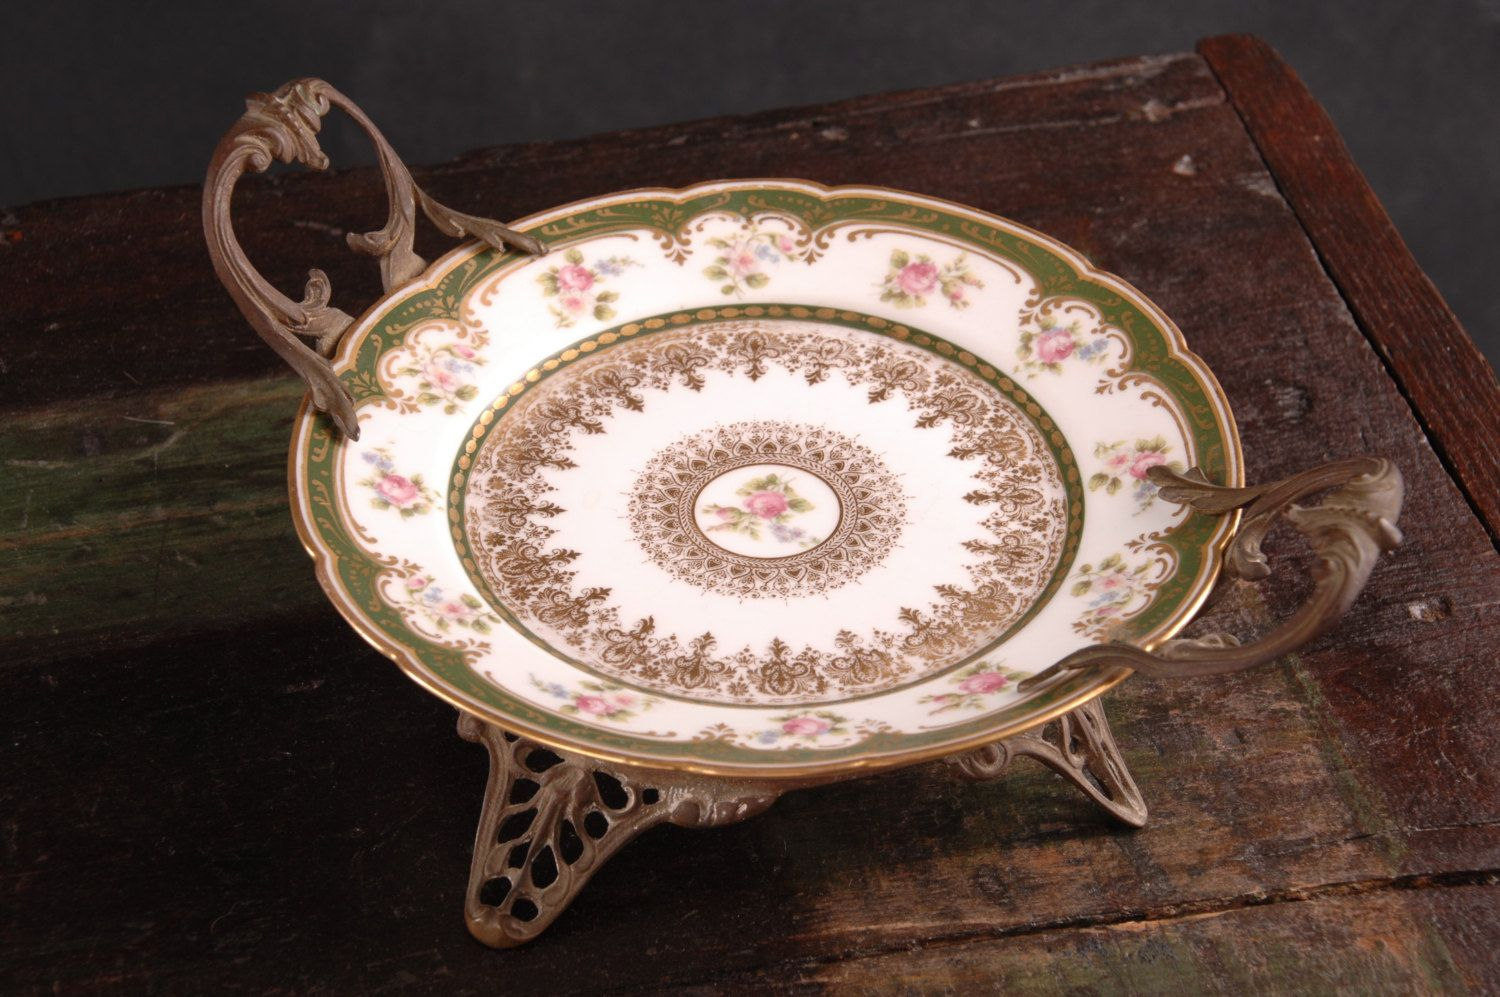 GDA Limoges Plate with Brass Mounts by dinaandpartners on Etsy